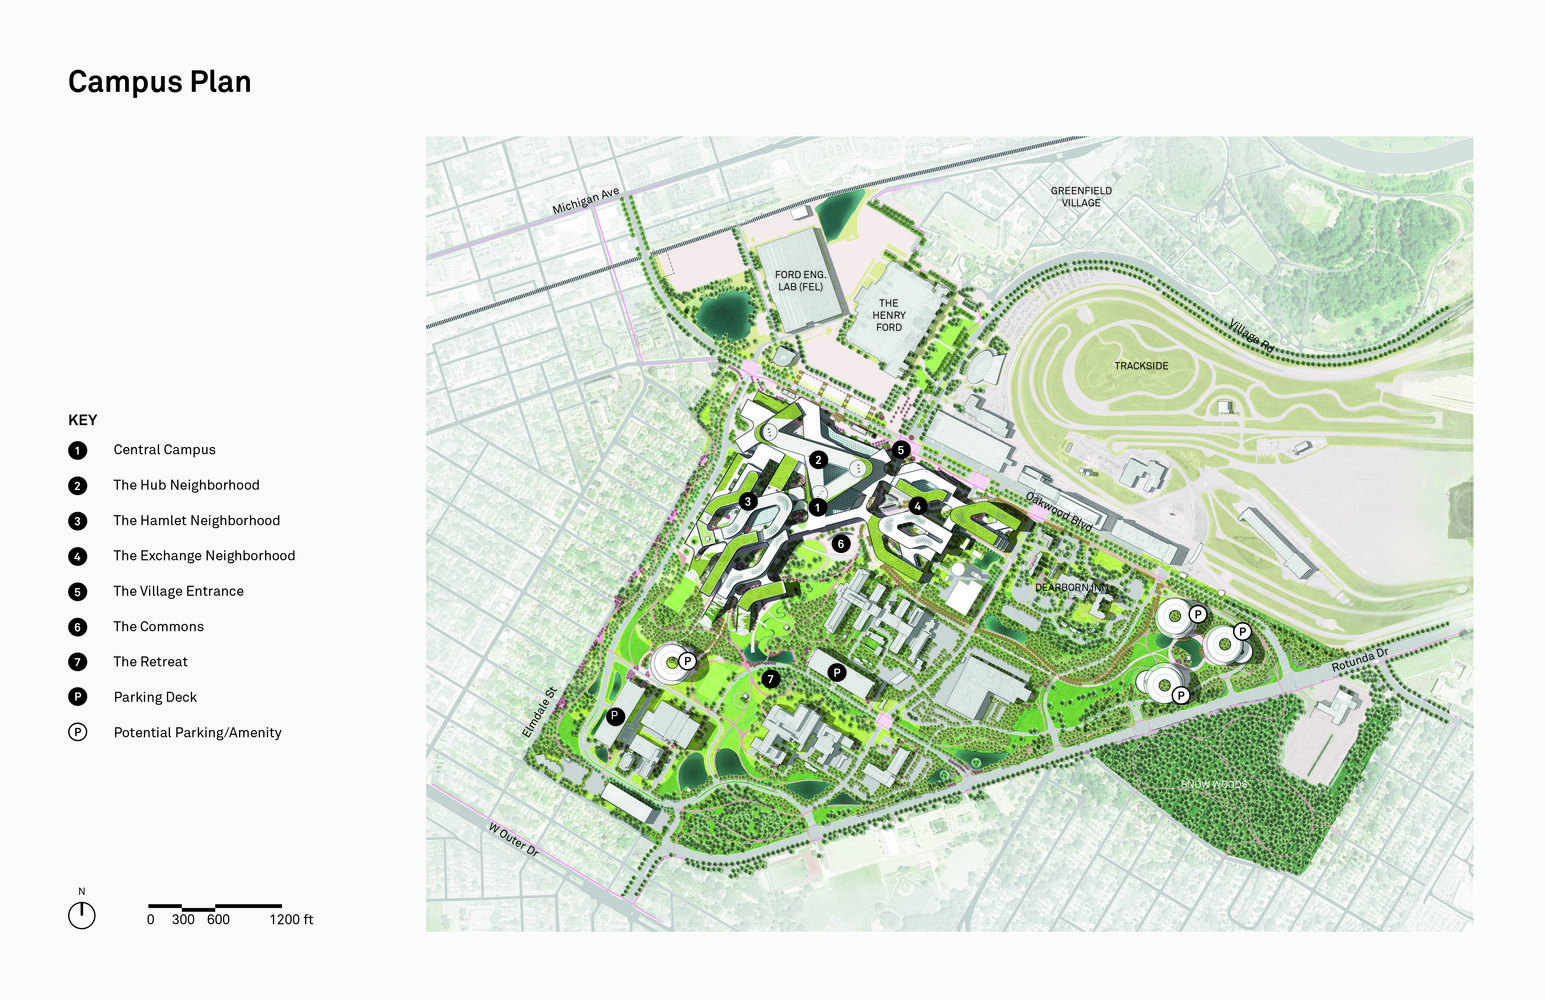 ford dearborn campus map Gallery Of Snohetta Develop Master Plan For Ford Motor Company In ford dearborn campus map